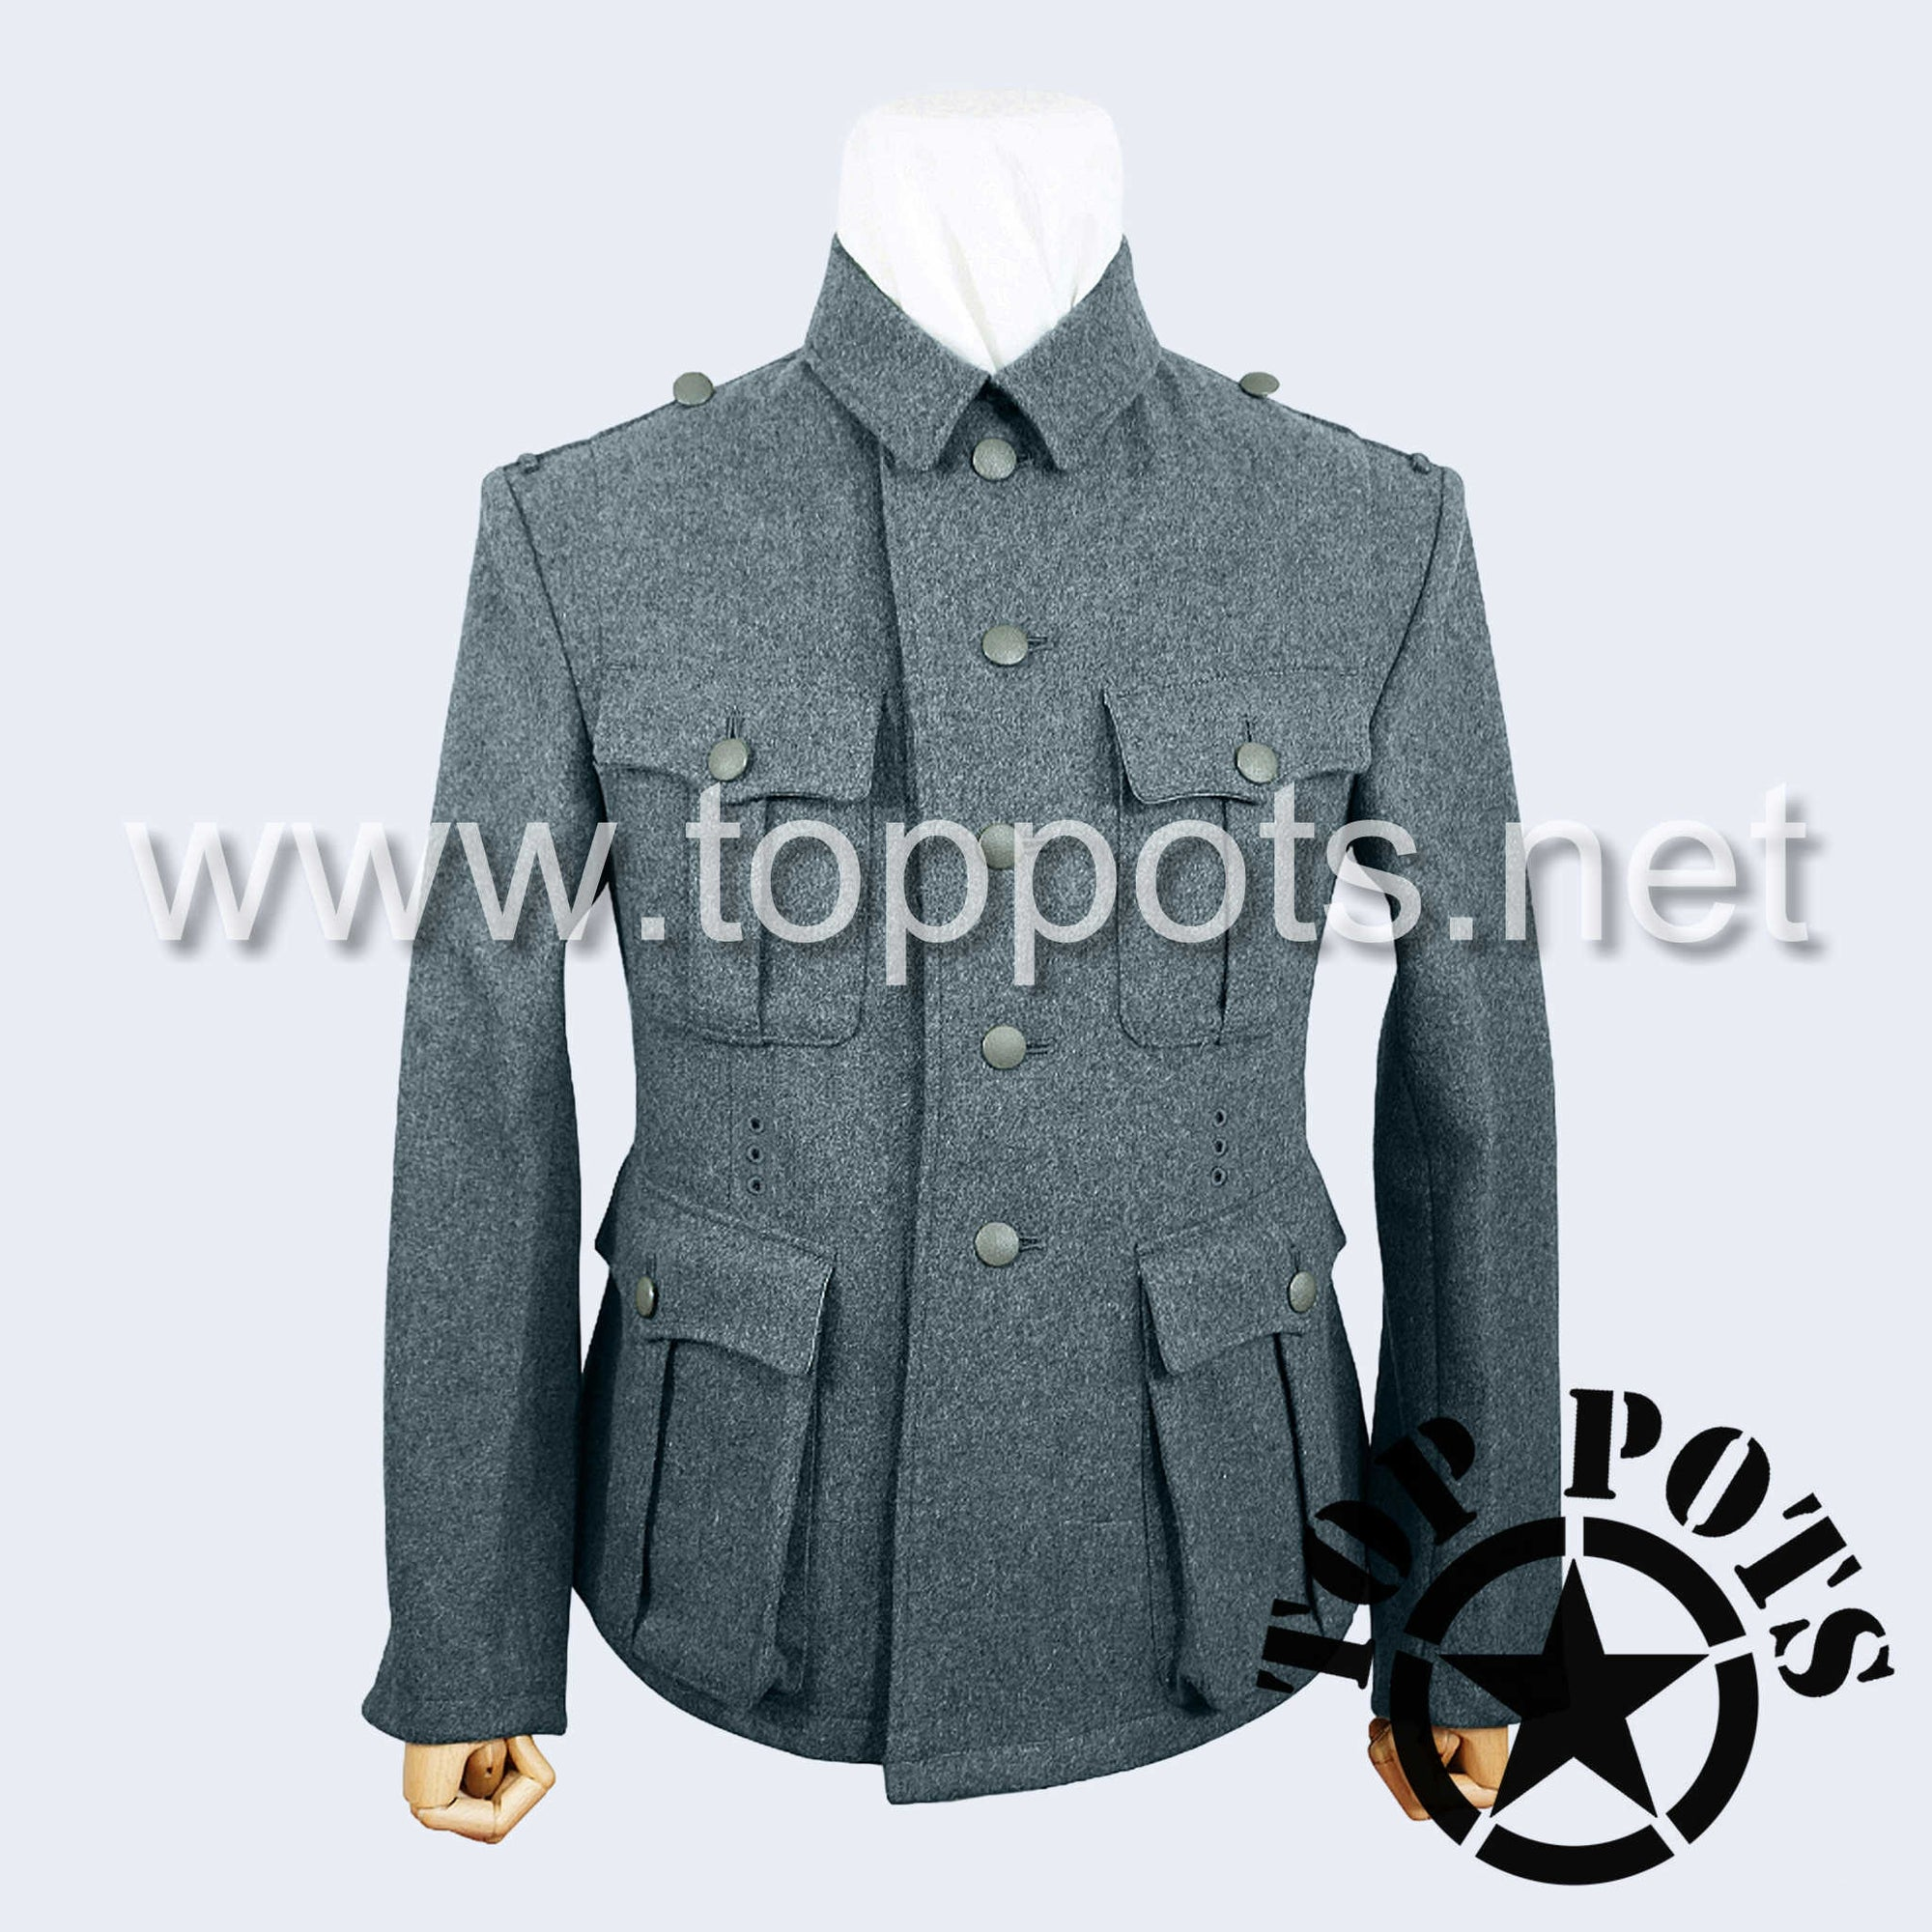 WWII German Army M1940 Waffen SS Uniform Jacket Blue-Green Grey Italian Field Wool - Enlisted Tunic